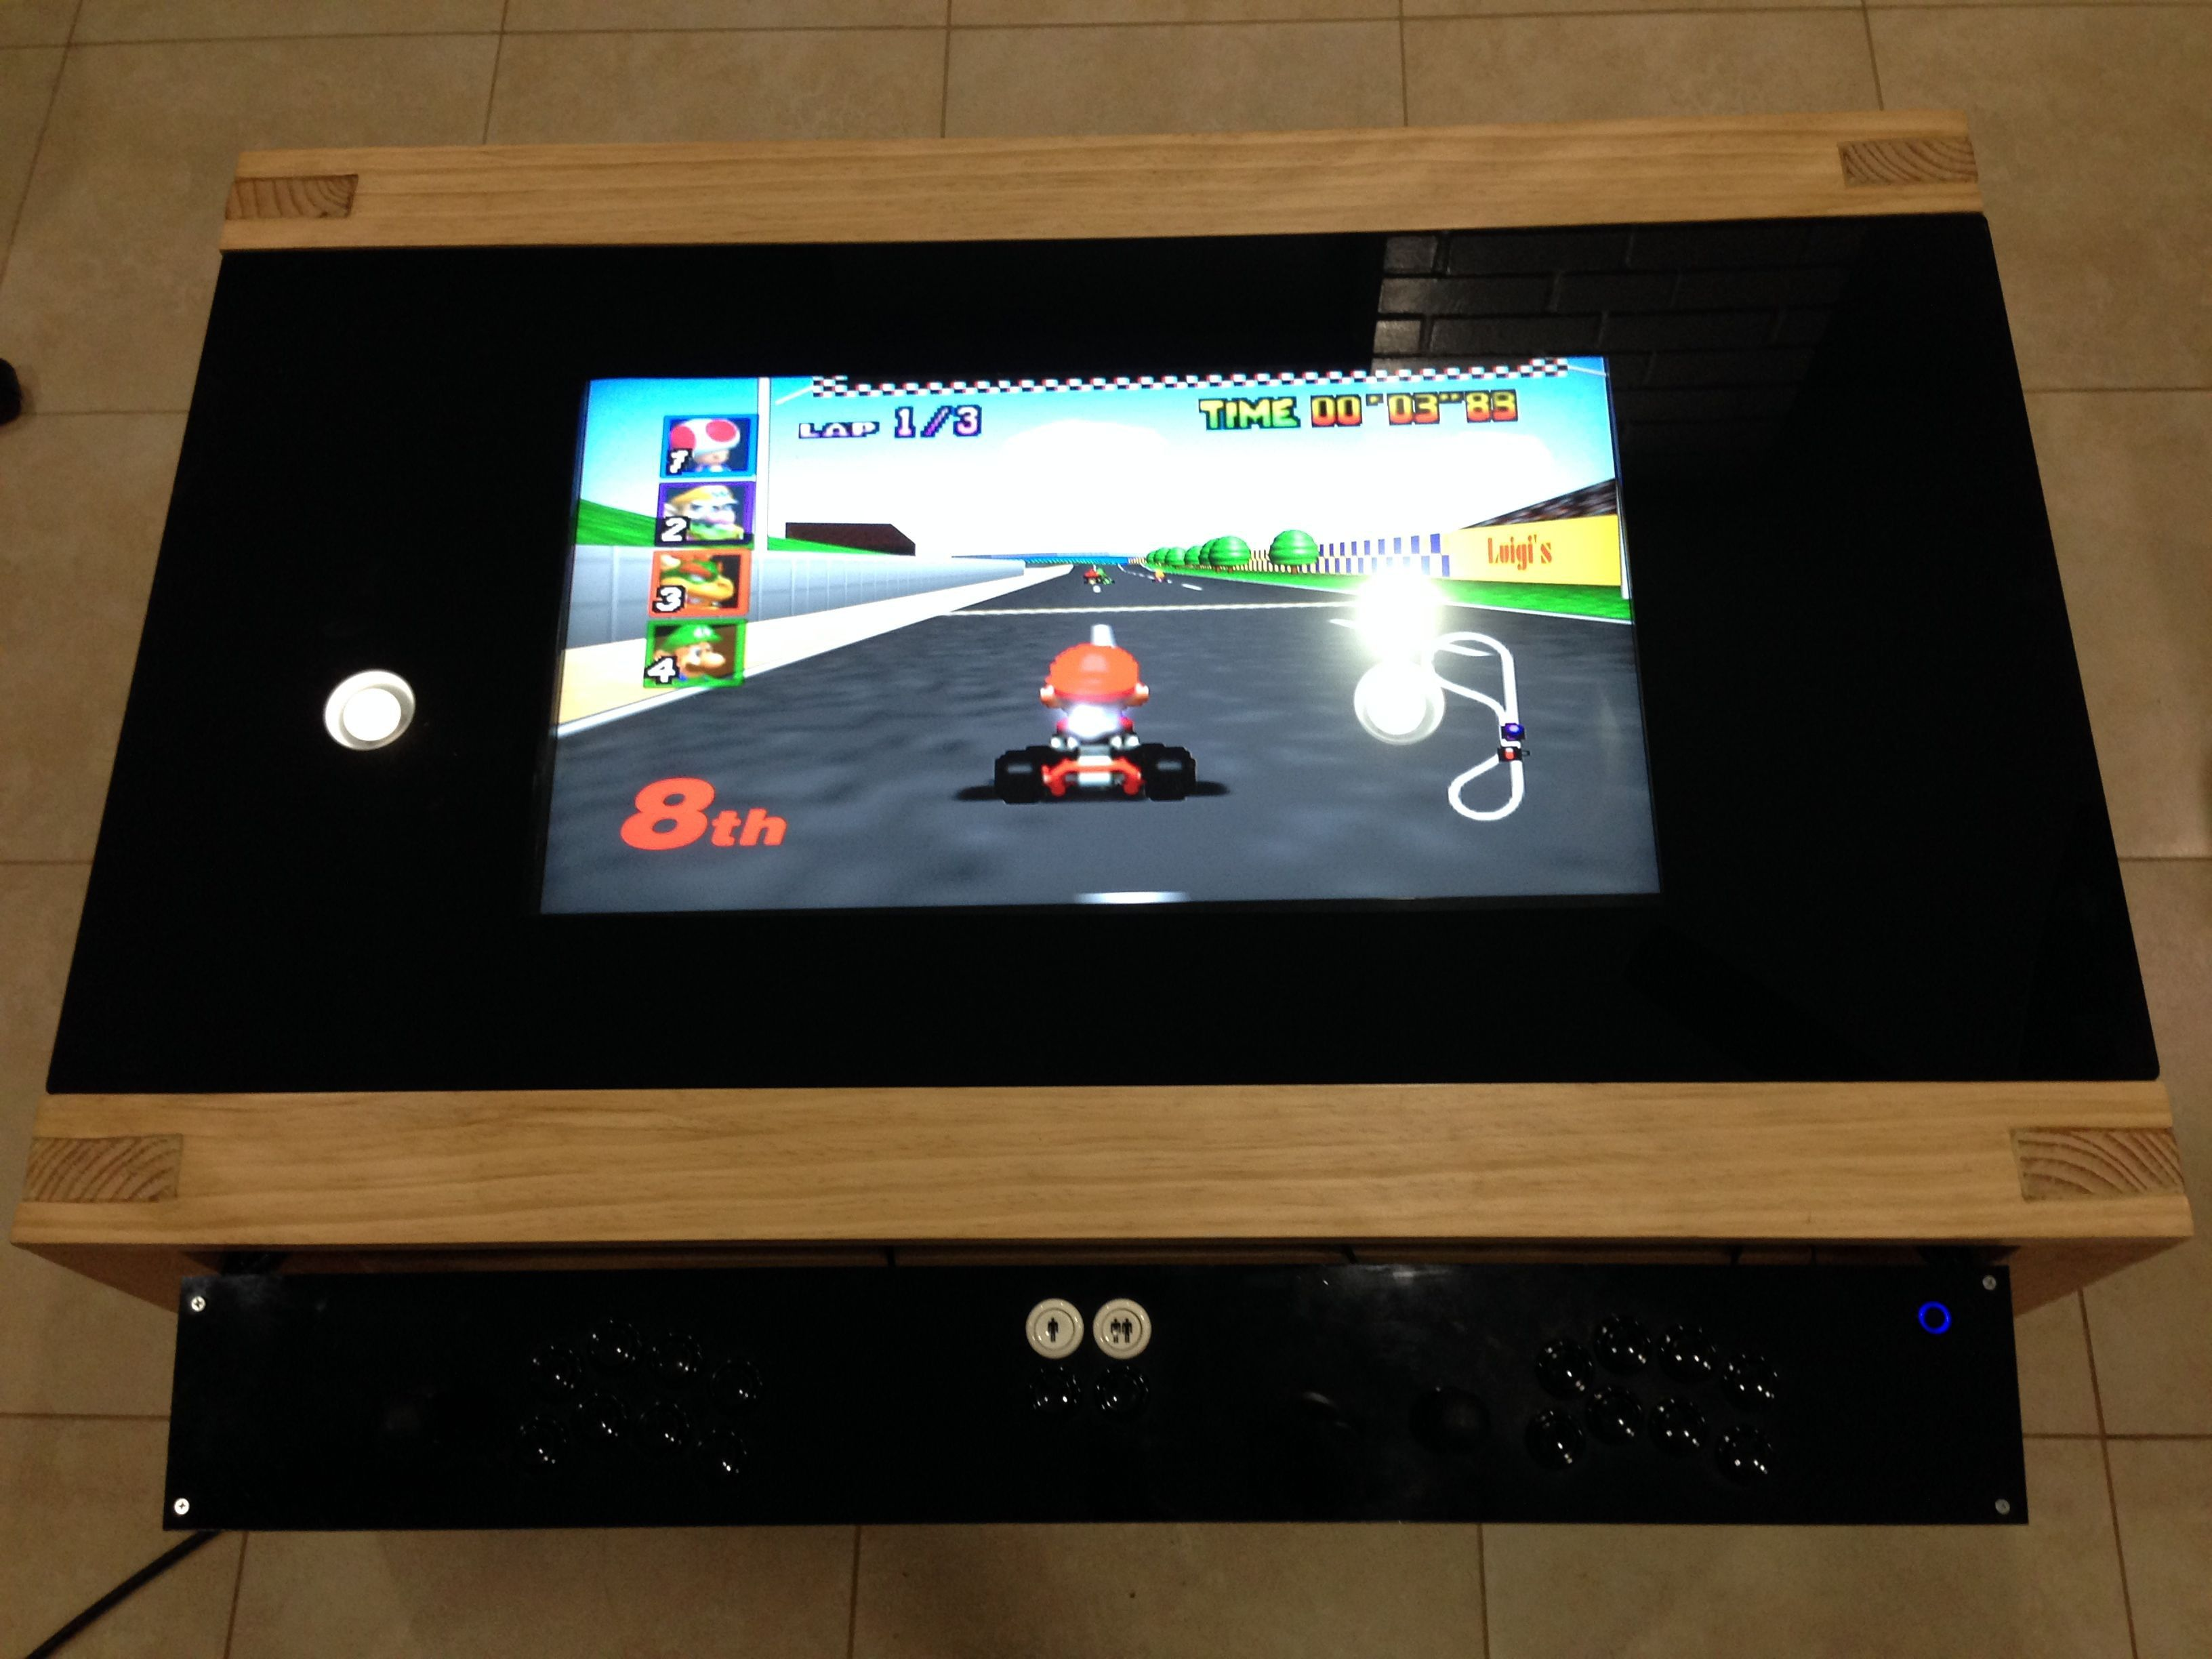 Imgur The Most Awesome Images On The Internet Coffee Table Arcade Arcade Table Coffee Games [ 2448 x 3264 Pixel ]